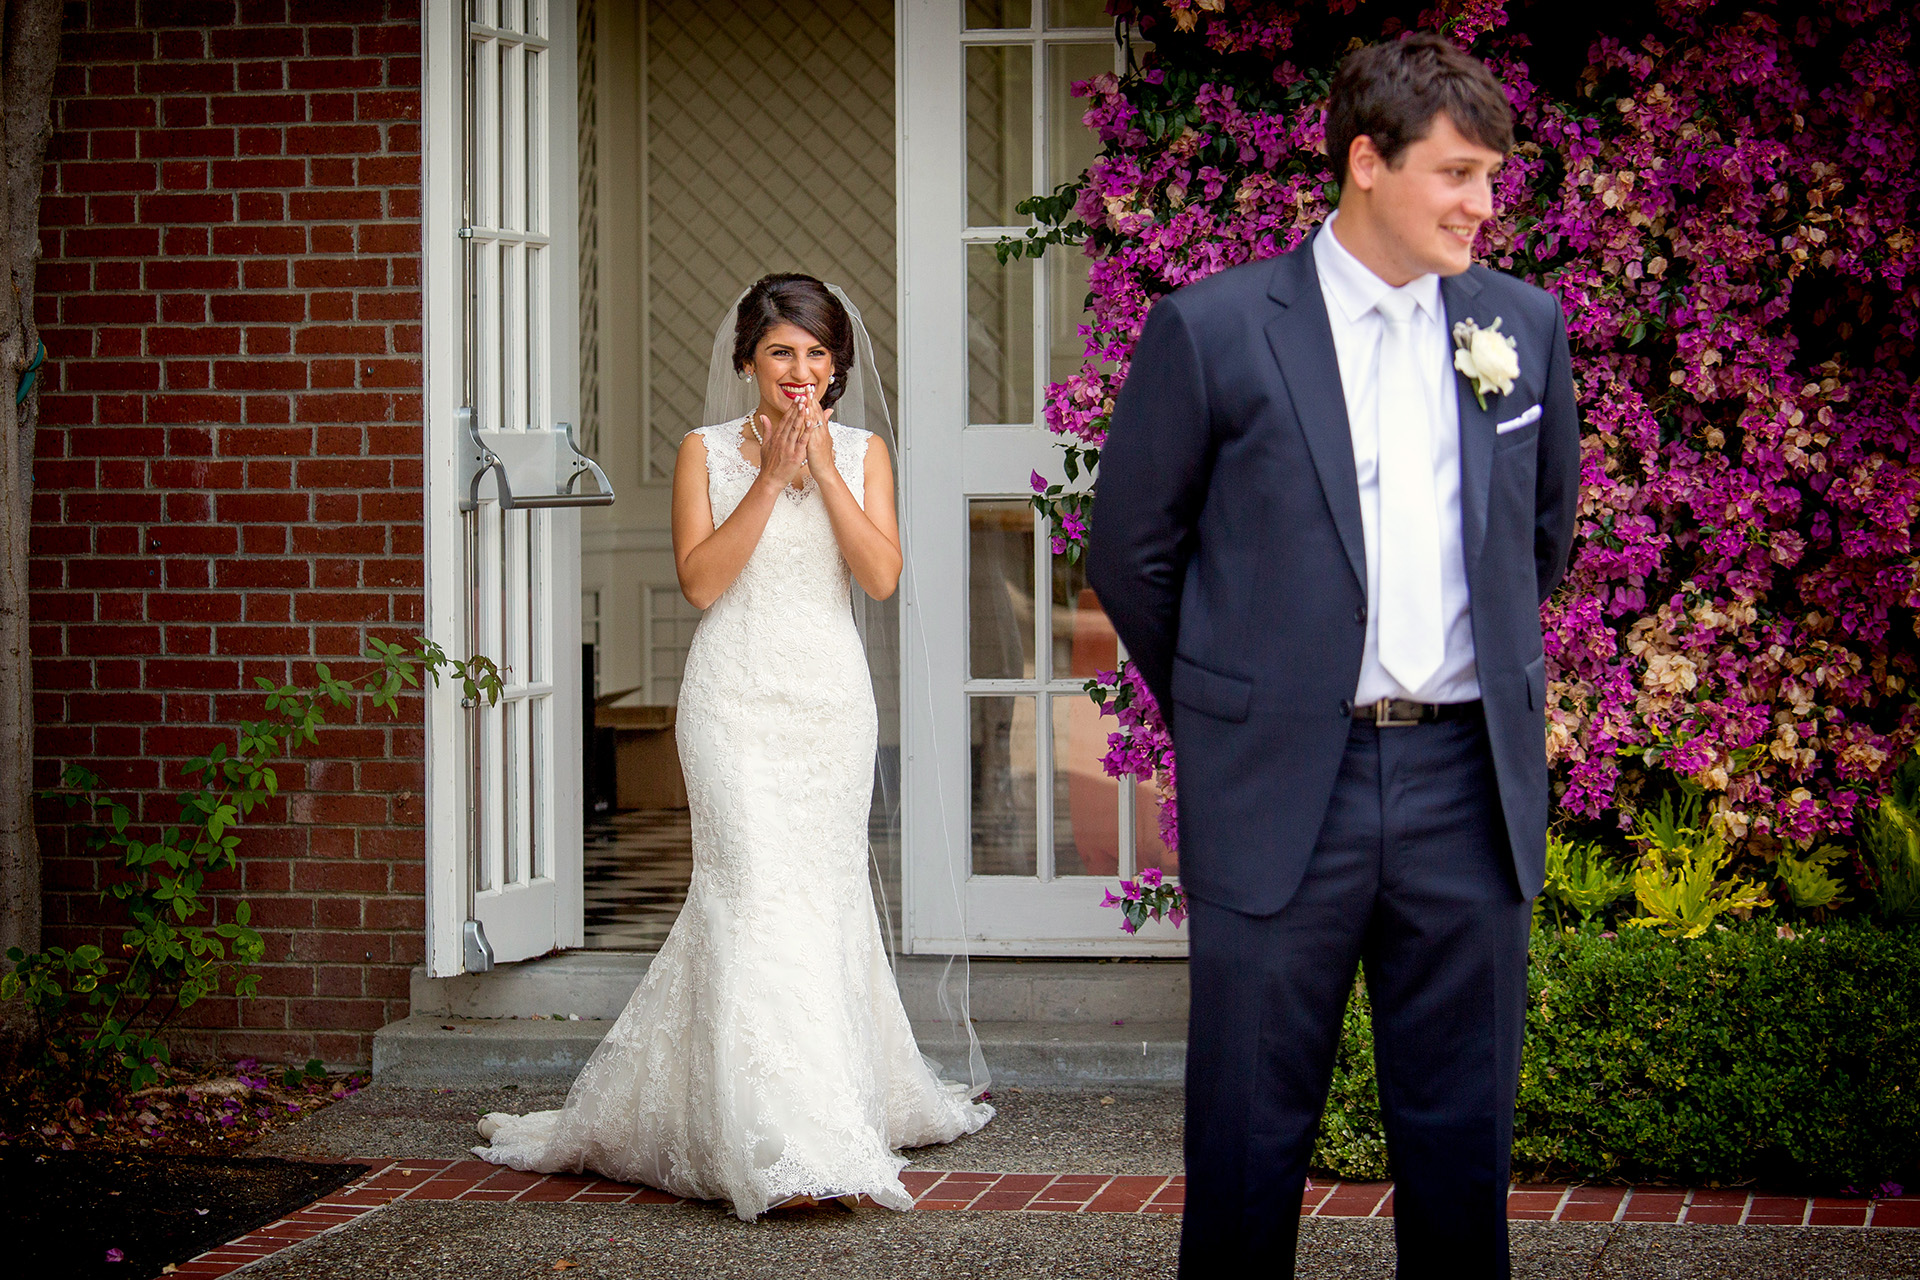 The First Look: Your Stress-Free Wedding (Part 2 of 4)